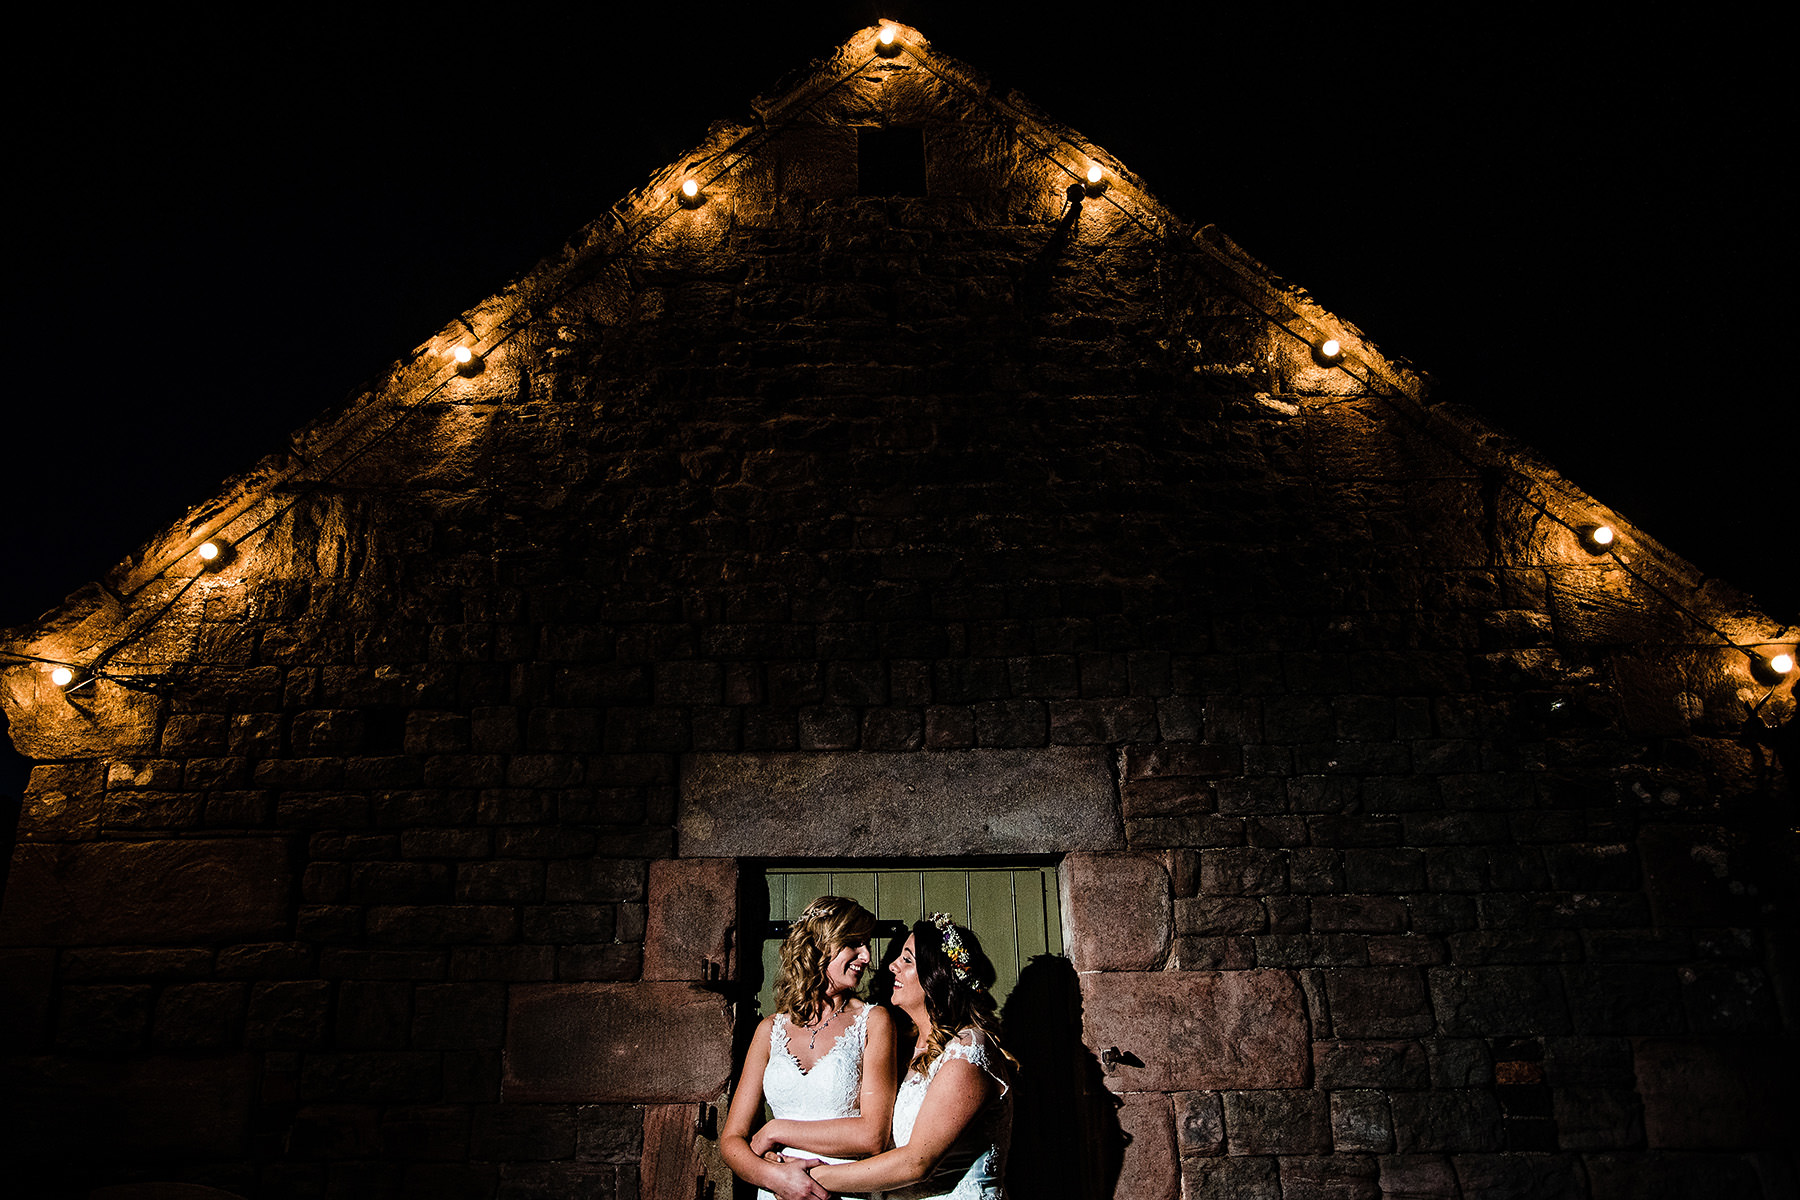 the brides outside in a night lit shot